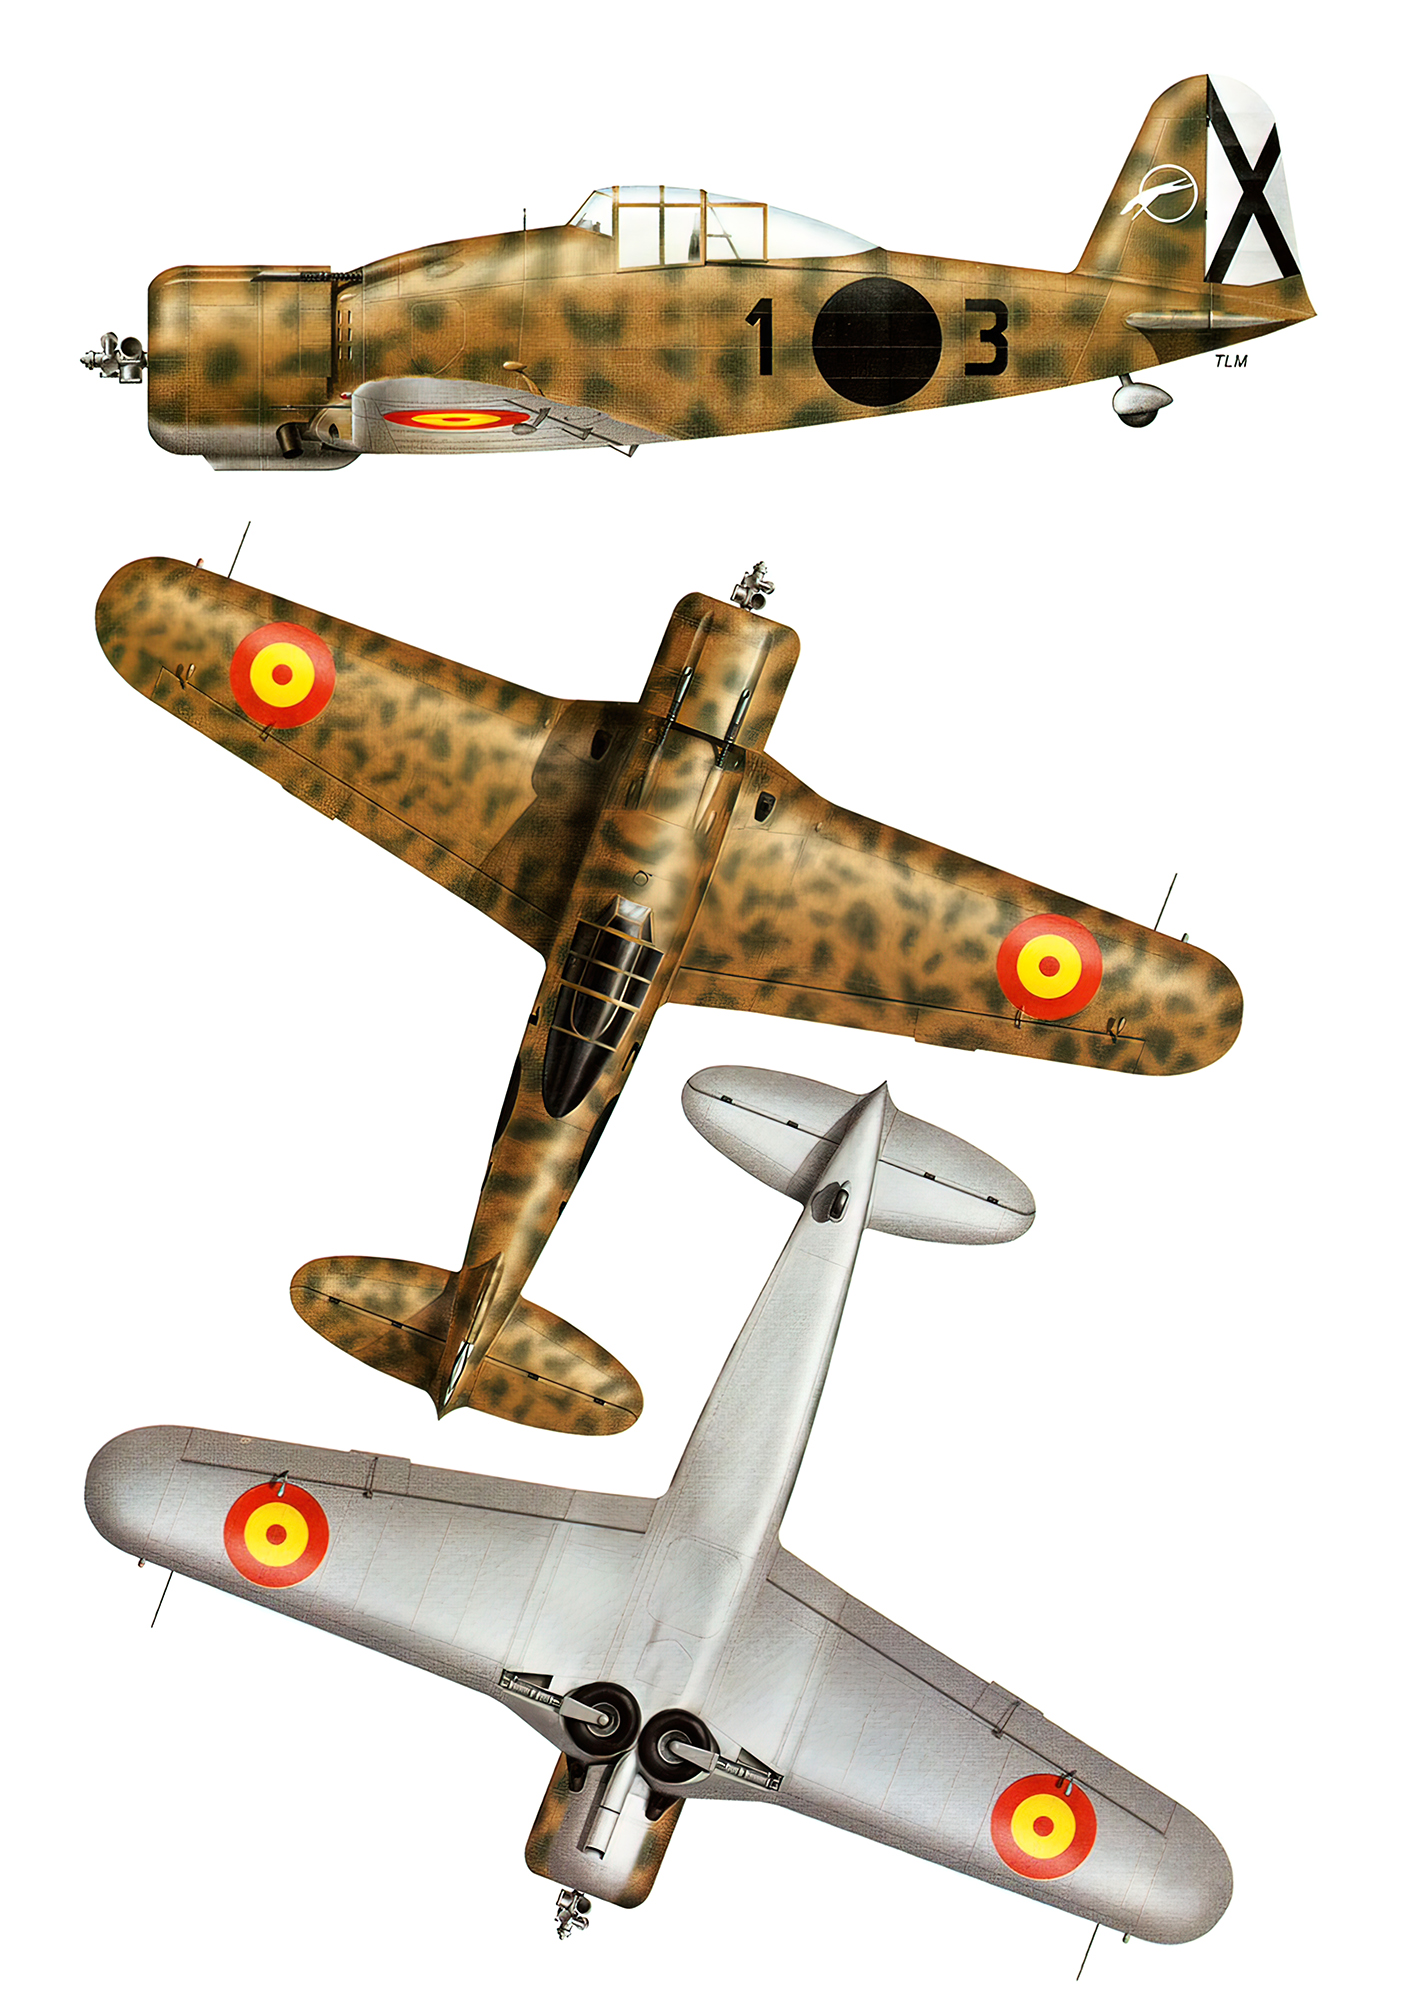 Fiat G50 Freccia Aviacion Nacional 27 Gruppo de Caza 3 Sevilla Tablada Spain Feb 1943 0A